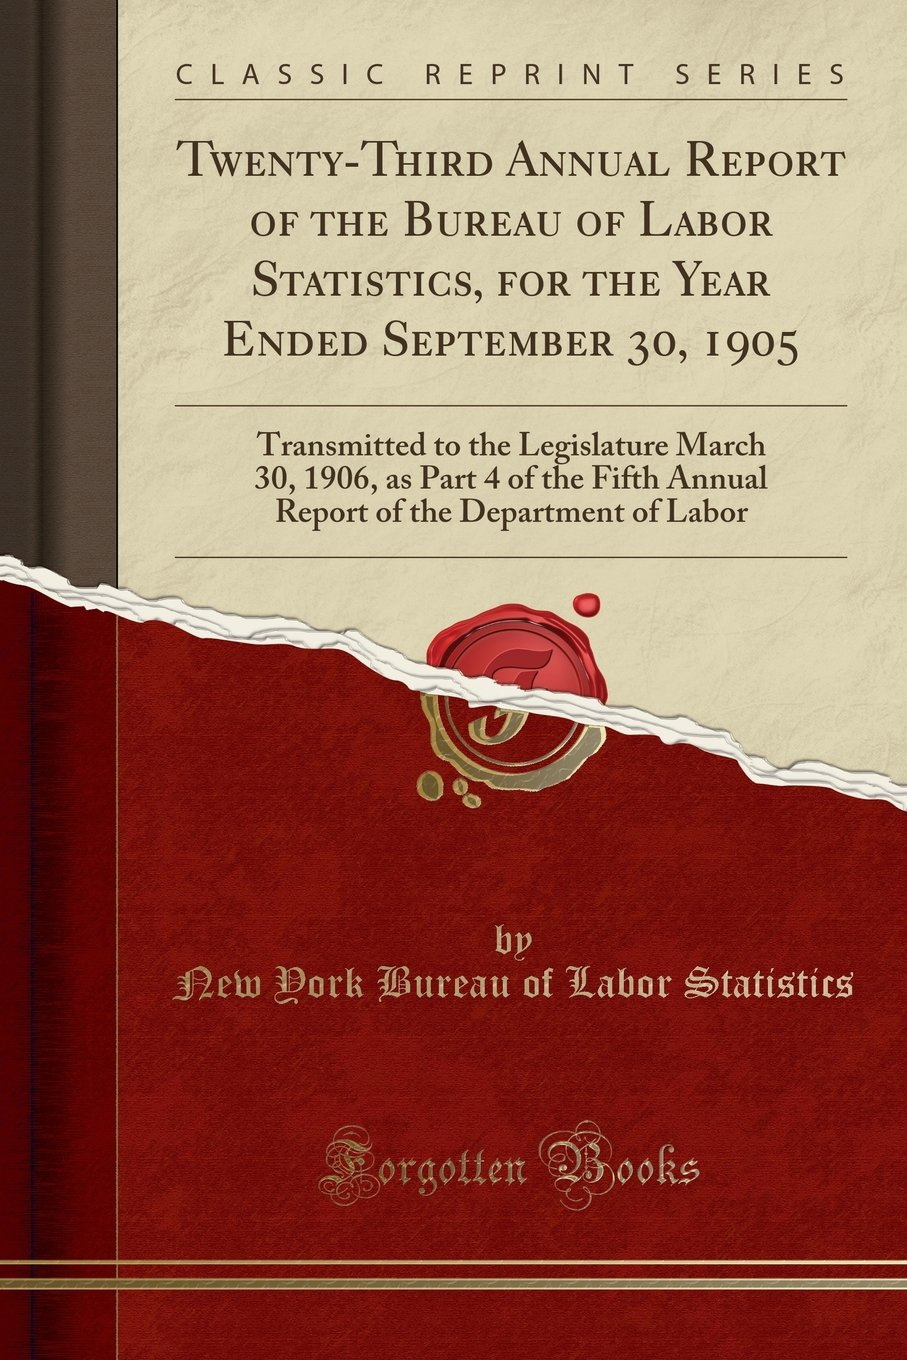 Download Twenty-Third Annual Report of the Bureau of Labor Statistics, for the Year Ended September 30, 1905: Transmitted to the Legislature March 30, 1906, as ... of the Department of Labor (Classic Reprint) PDF